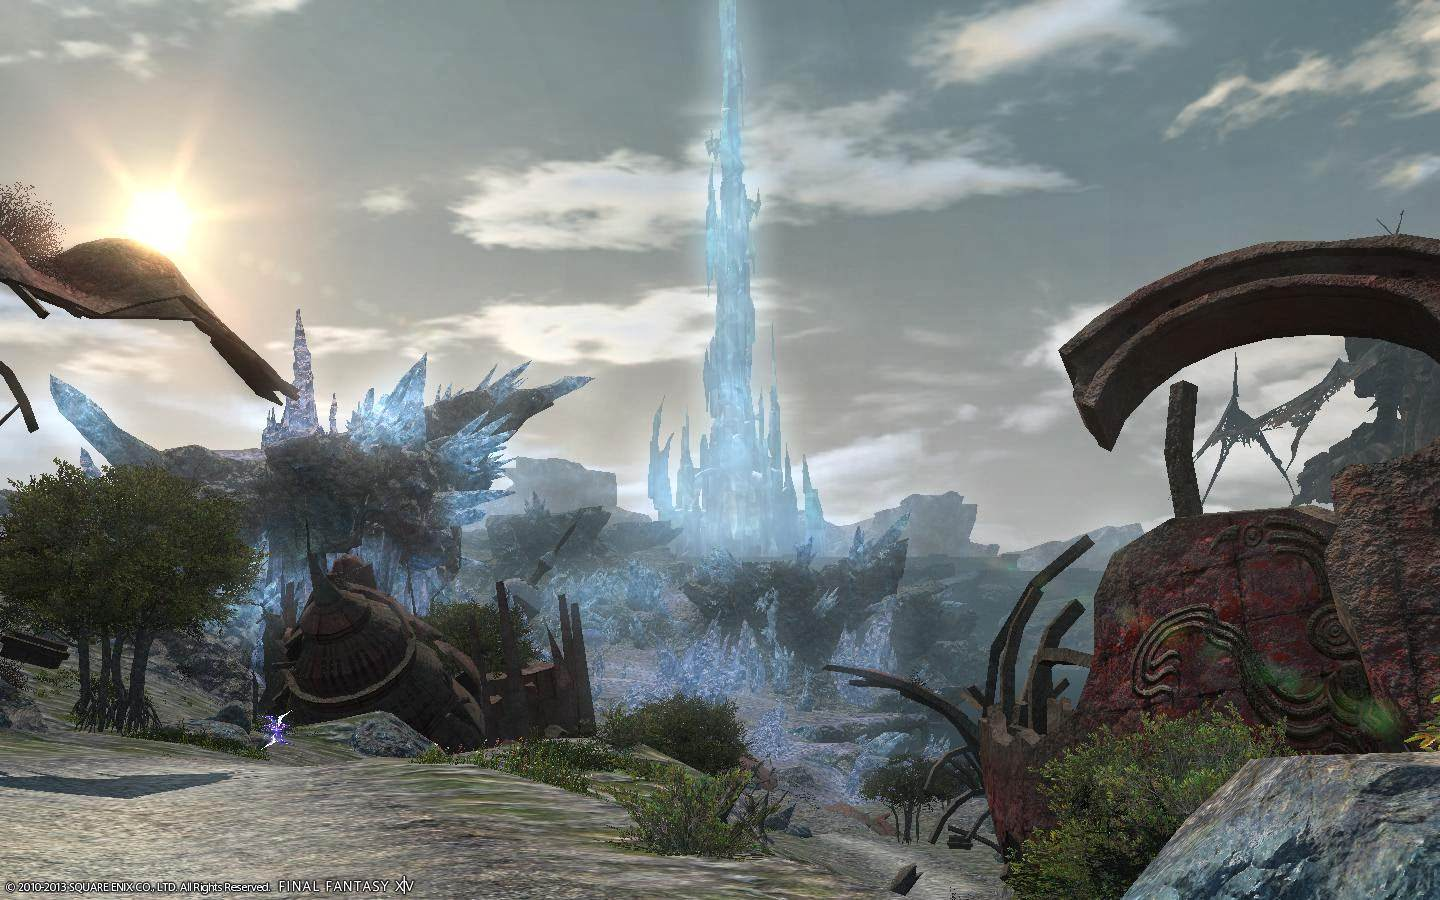 Final Fantasy XIV: A Realm Reborn - Beginners Guide to the